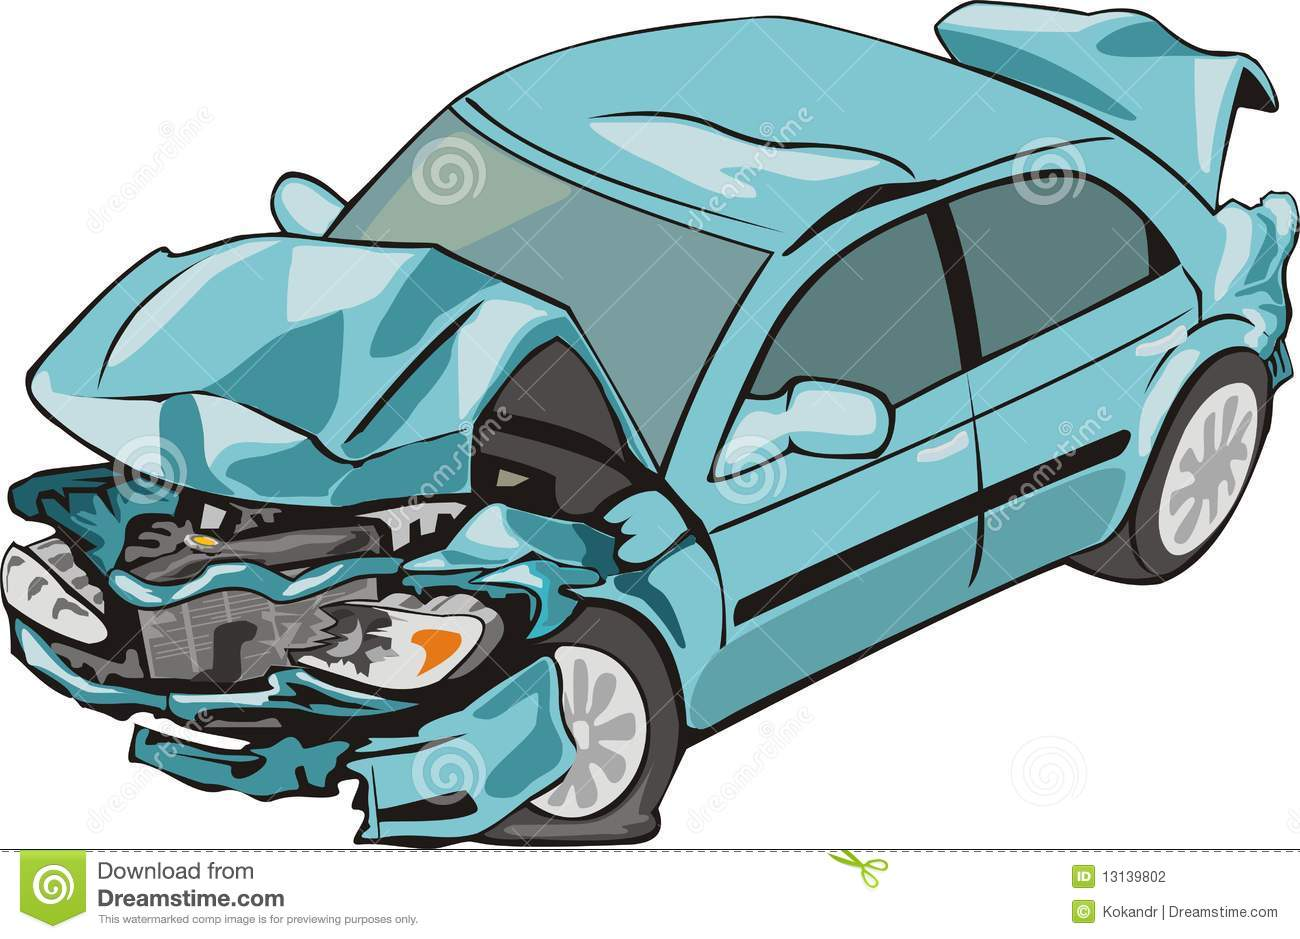 Crashed car clipart 1 » Clipart Station.